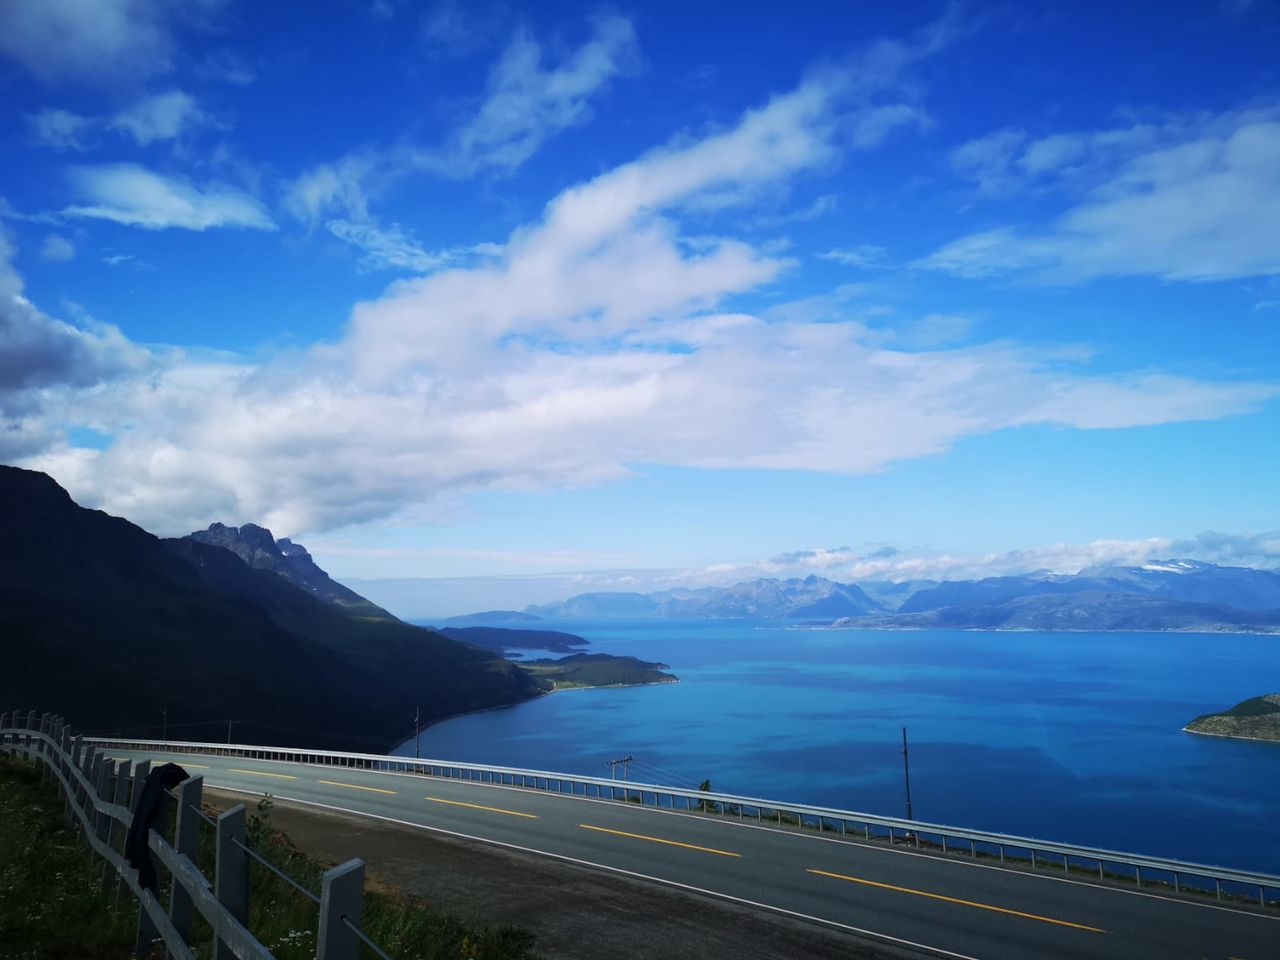 mountain, sky, cloud - sky, scenics - nature, beauty in nature, transportation, road, mountain range, water, nature, non-urban scene, blue, tranquil scene, railing, tranquility, sea, no people, day, mode of transportation, outdoors, crash barrier